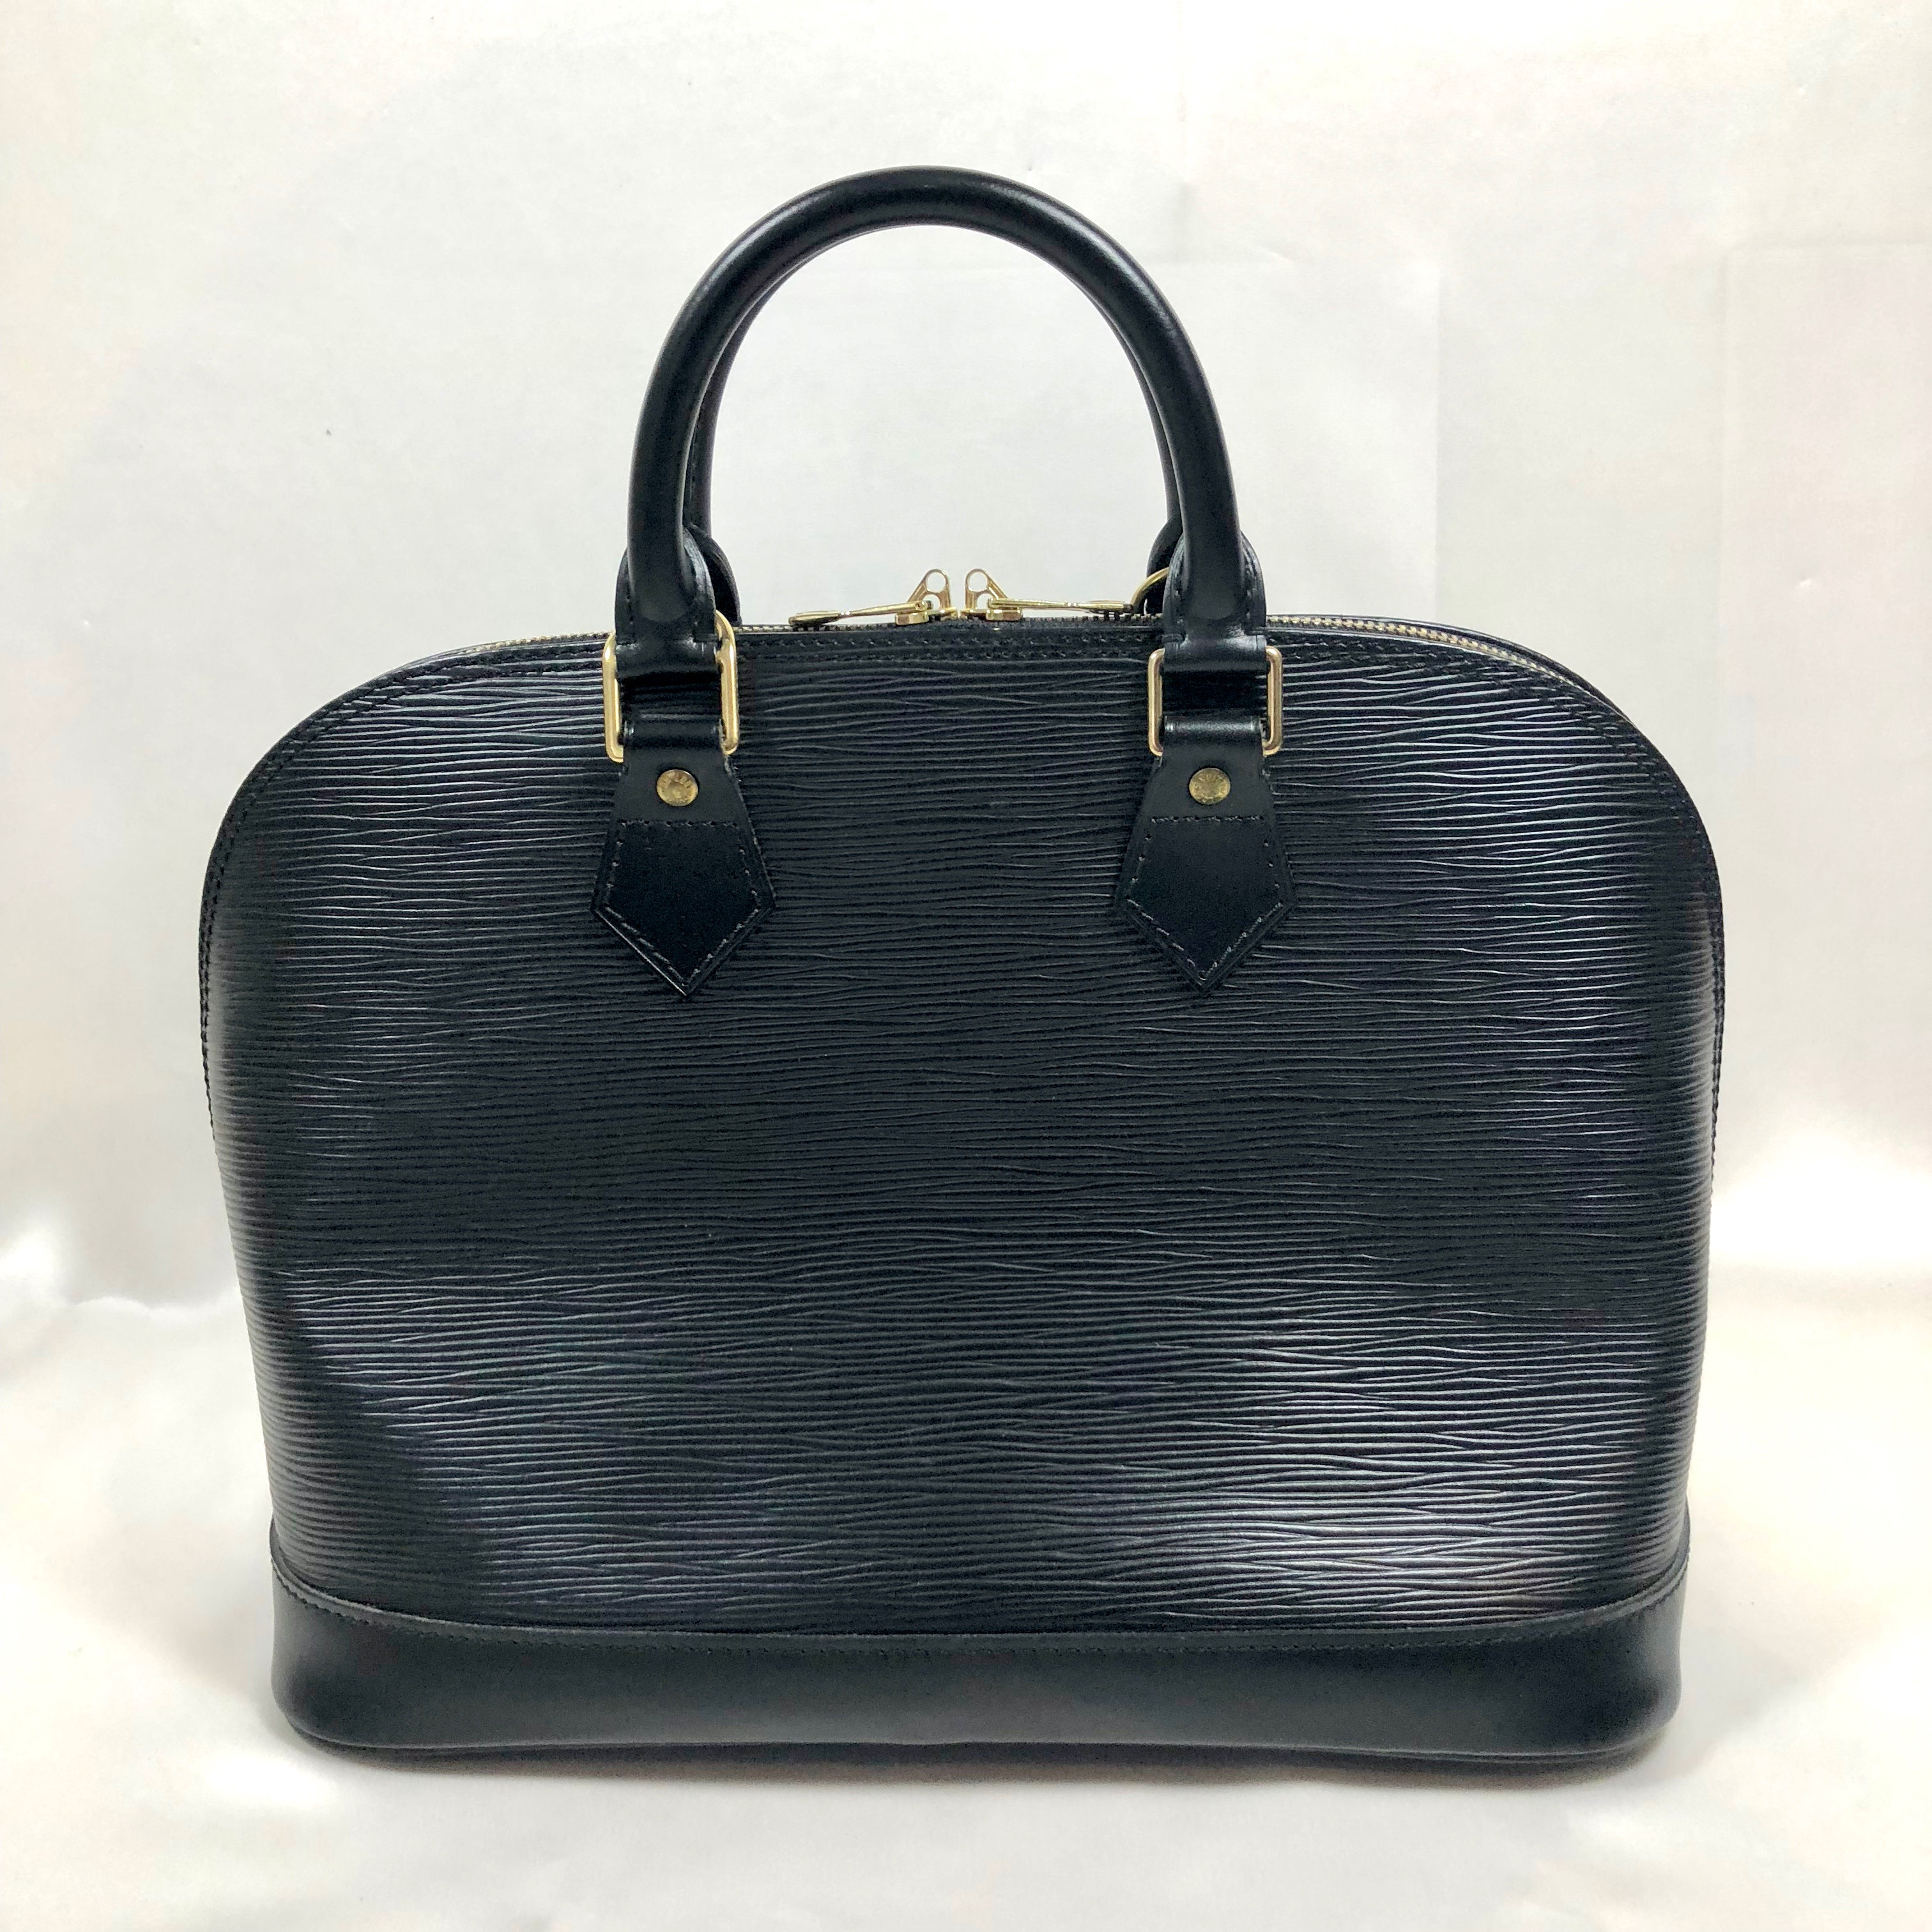 0bd7bb6098ff LOUIS VUITTON ALMA PM IN EPI LEATHER - Still in fashion